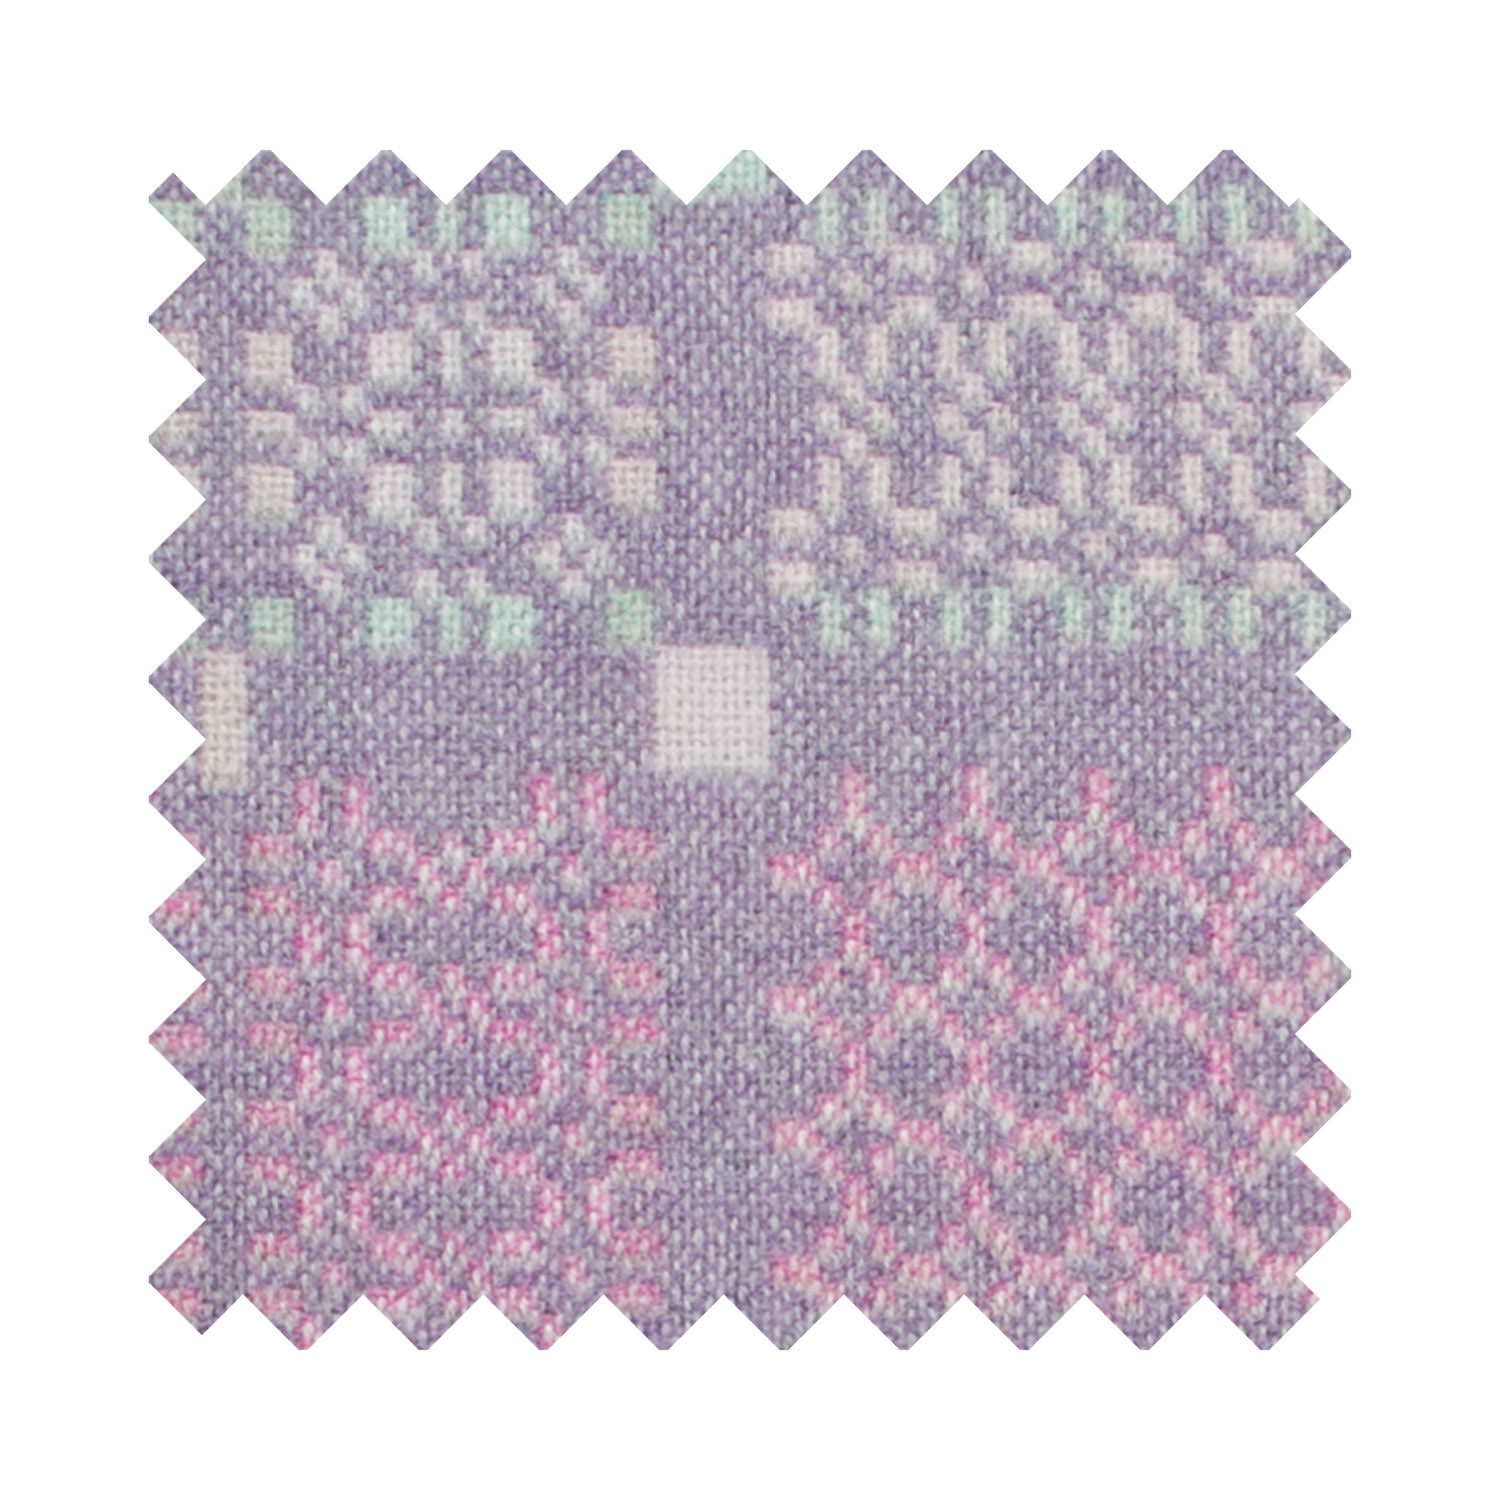 Knot garden lilac sample swatch